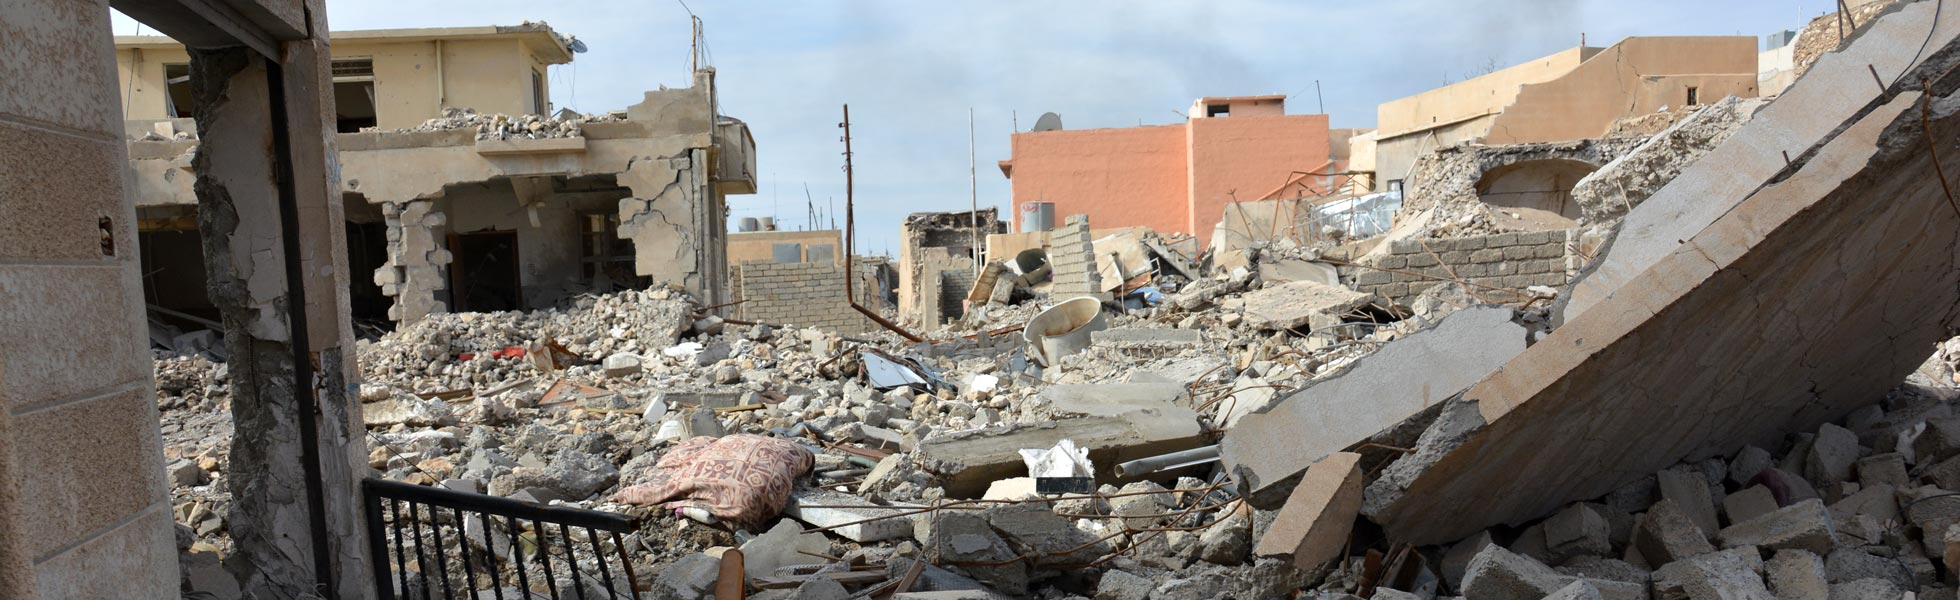 Iraq: More than 12,000 private homes on the Nineveh plains damaged by ISIS